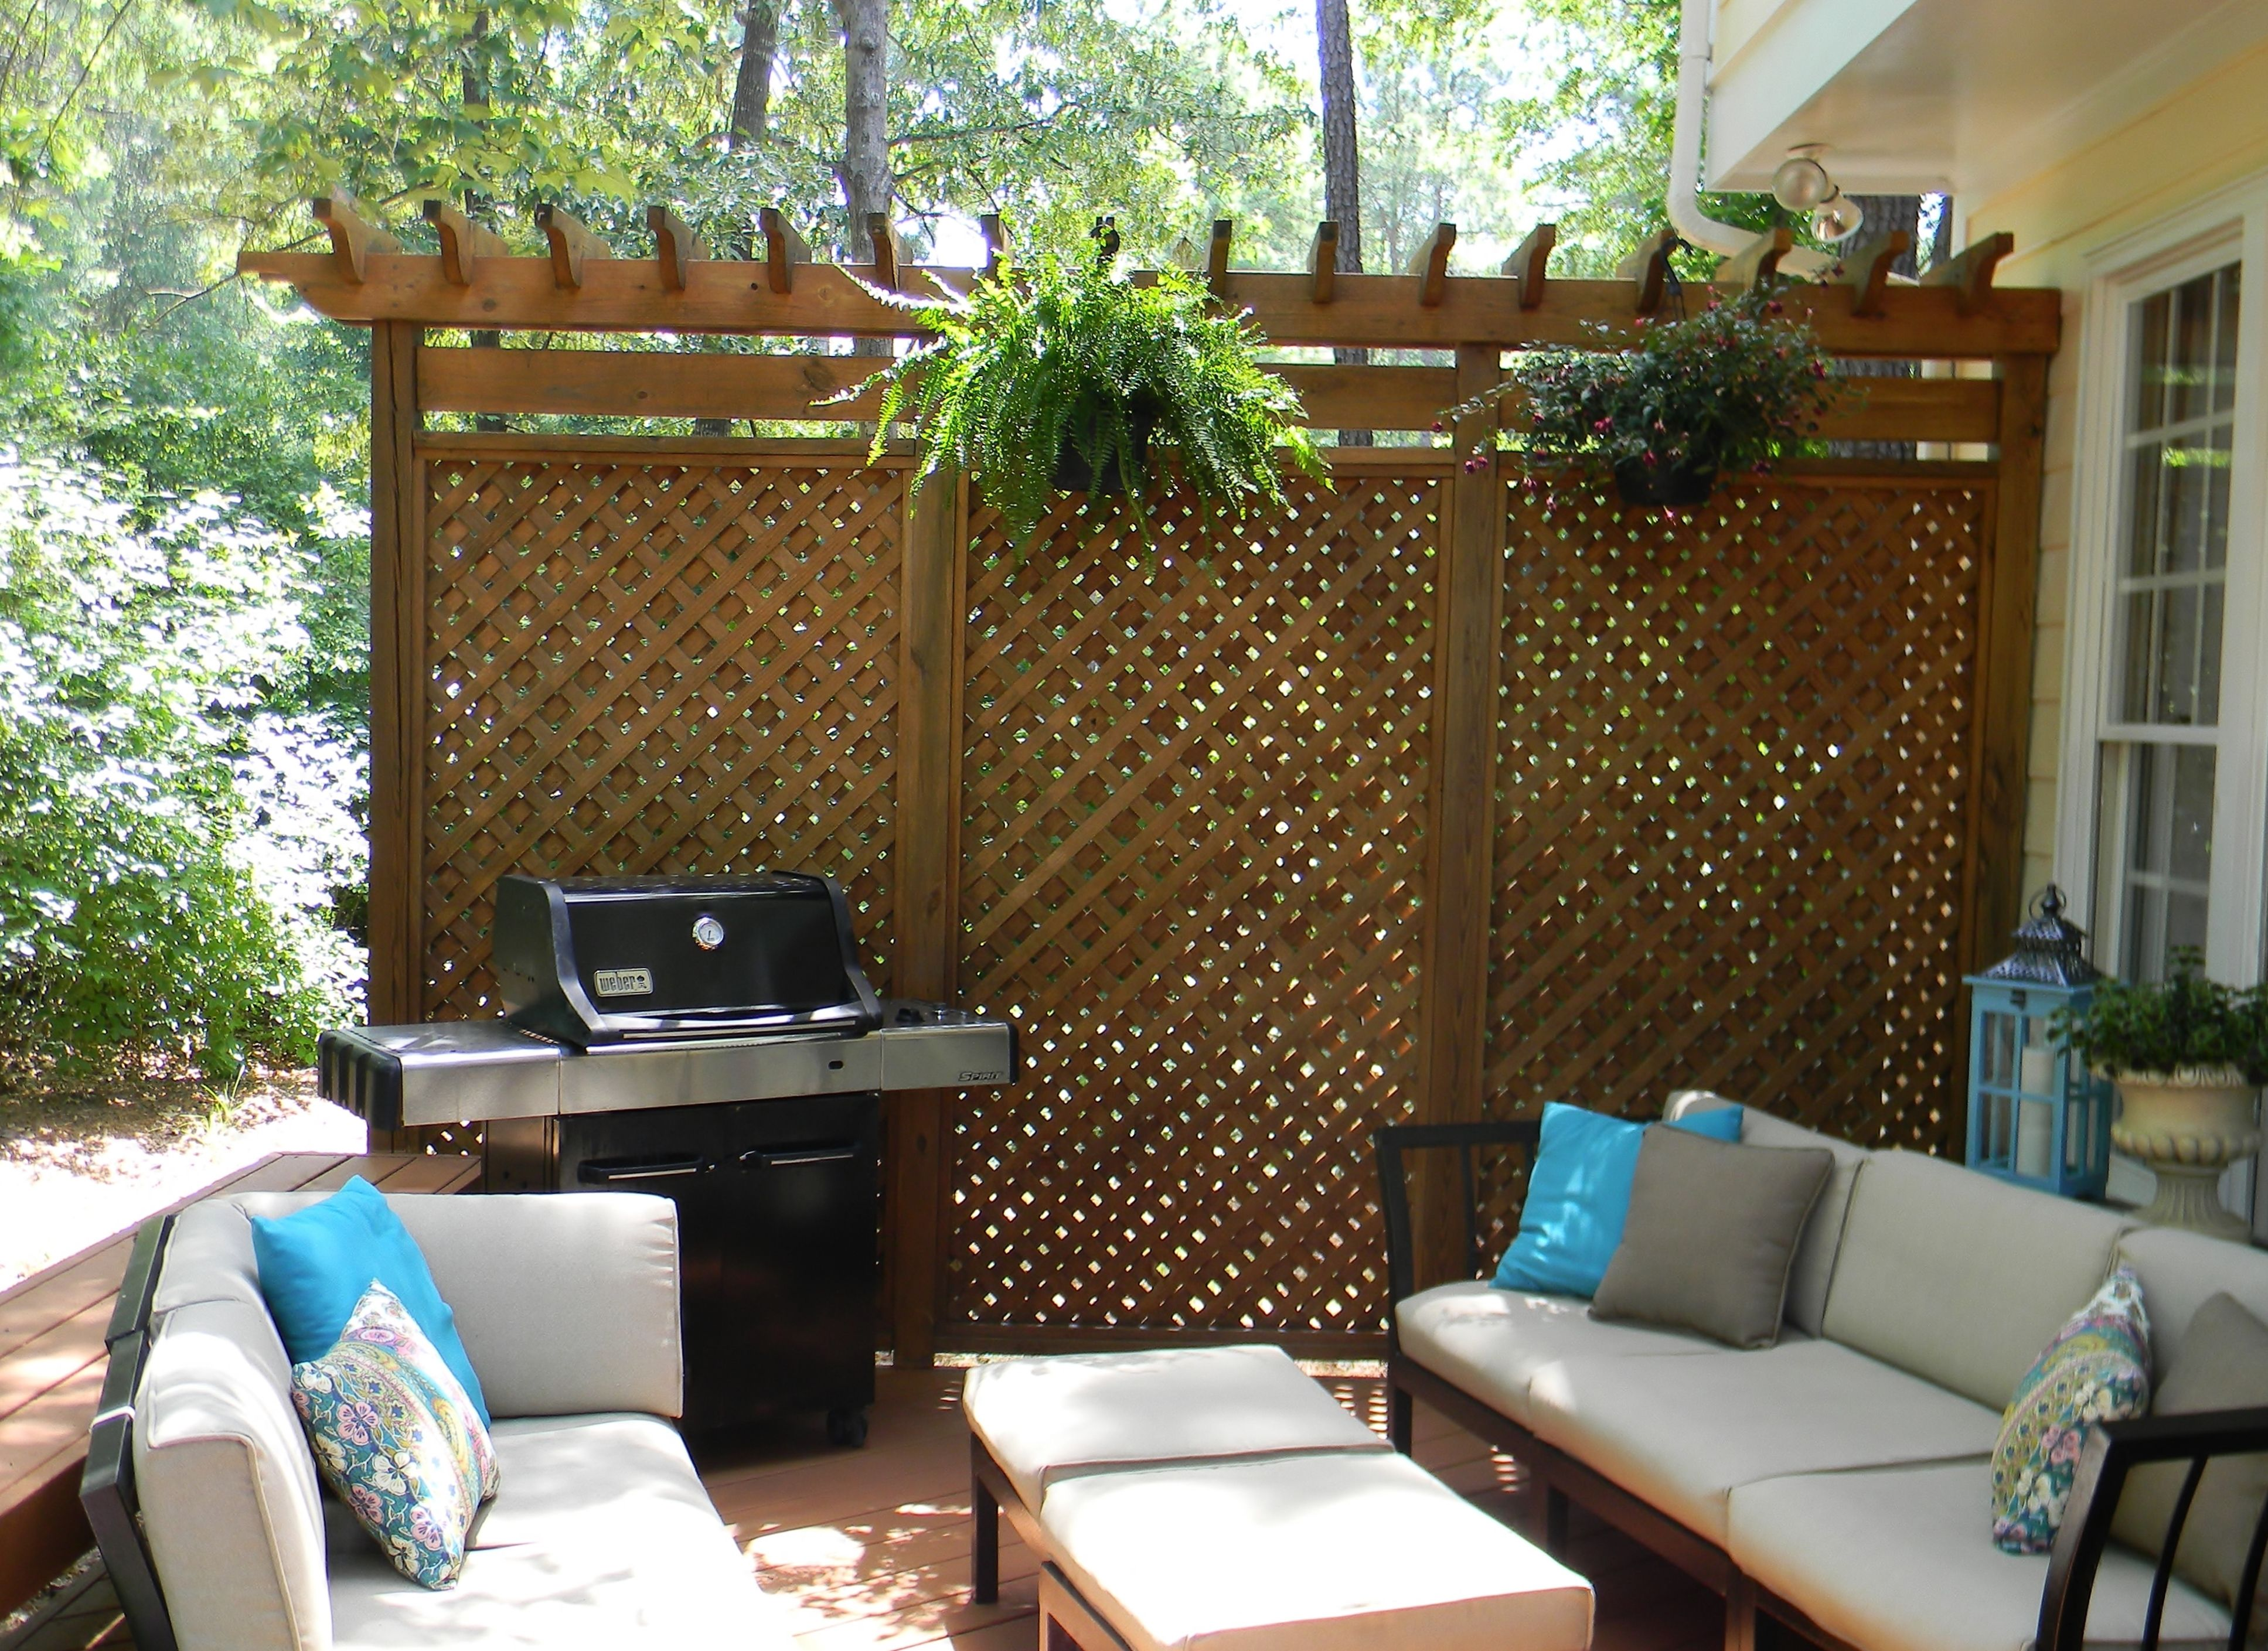 Patio Privacy Screen Plans. Saveemail. Balcony Privacy Screen Ikea.  Completed Trellis Planter Box